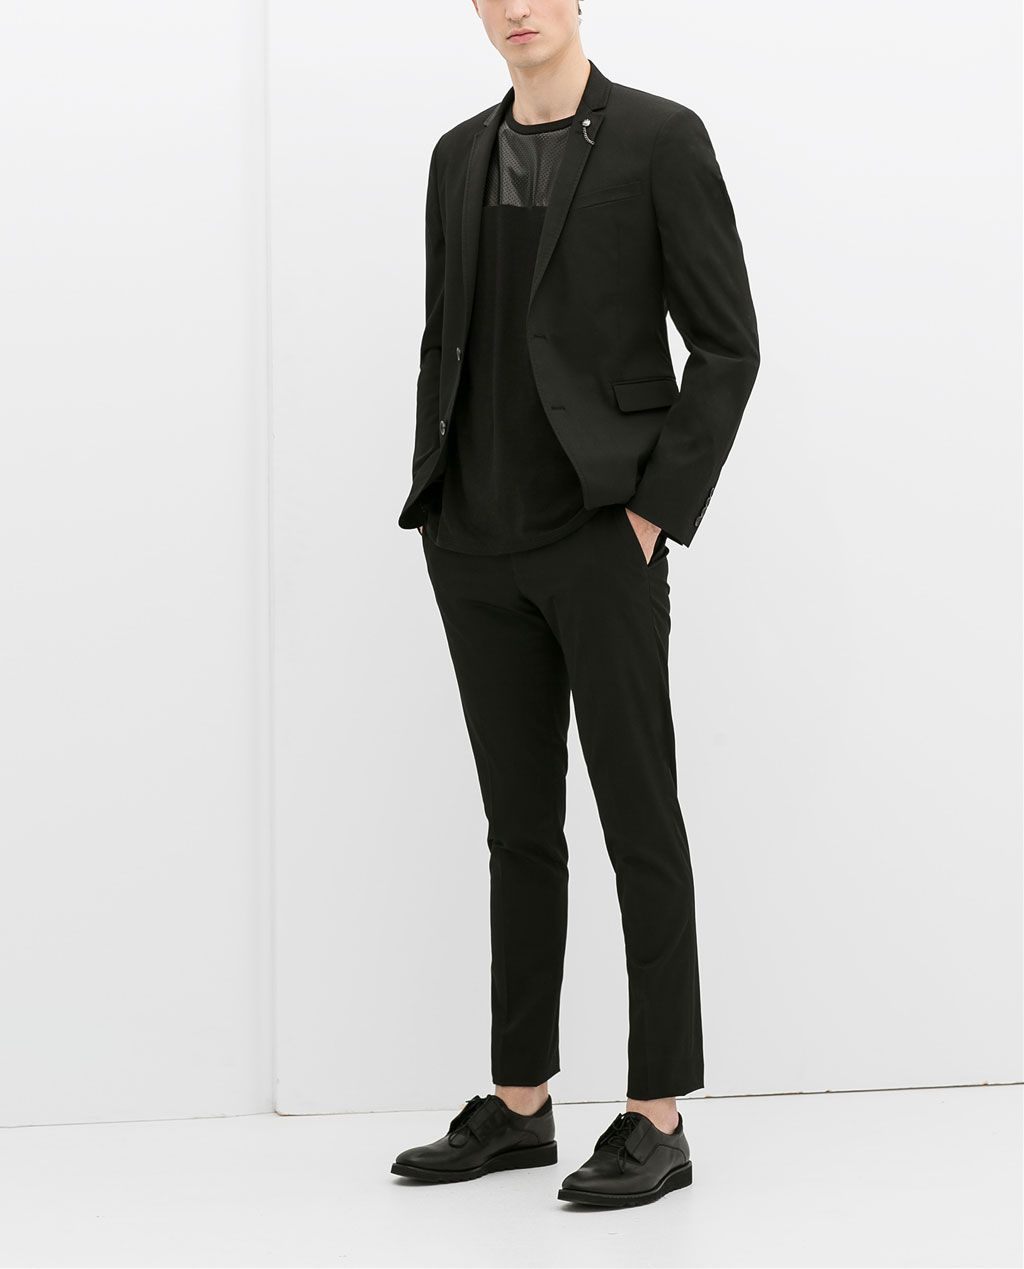 47821e89b9b14 ZARA - MAN - BLACK SUIT